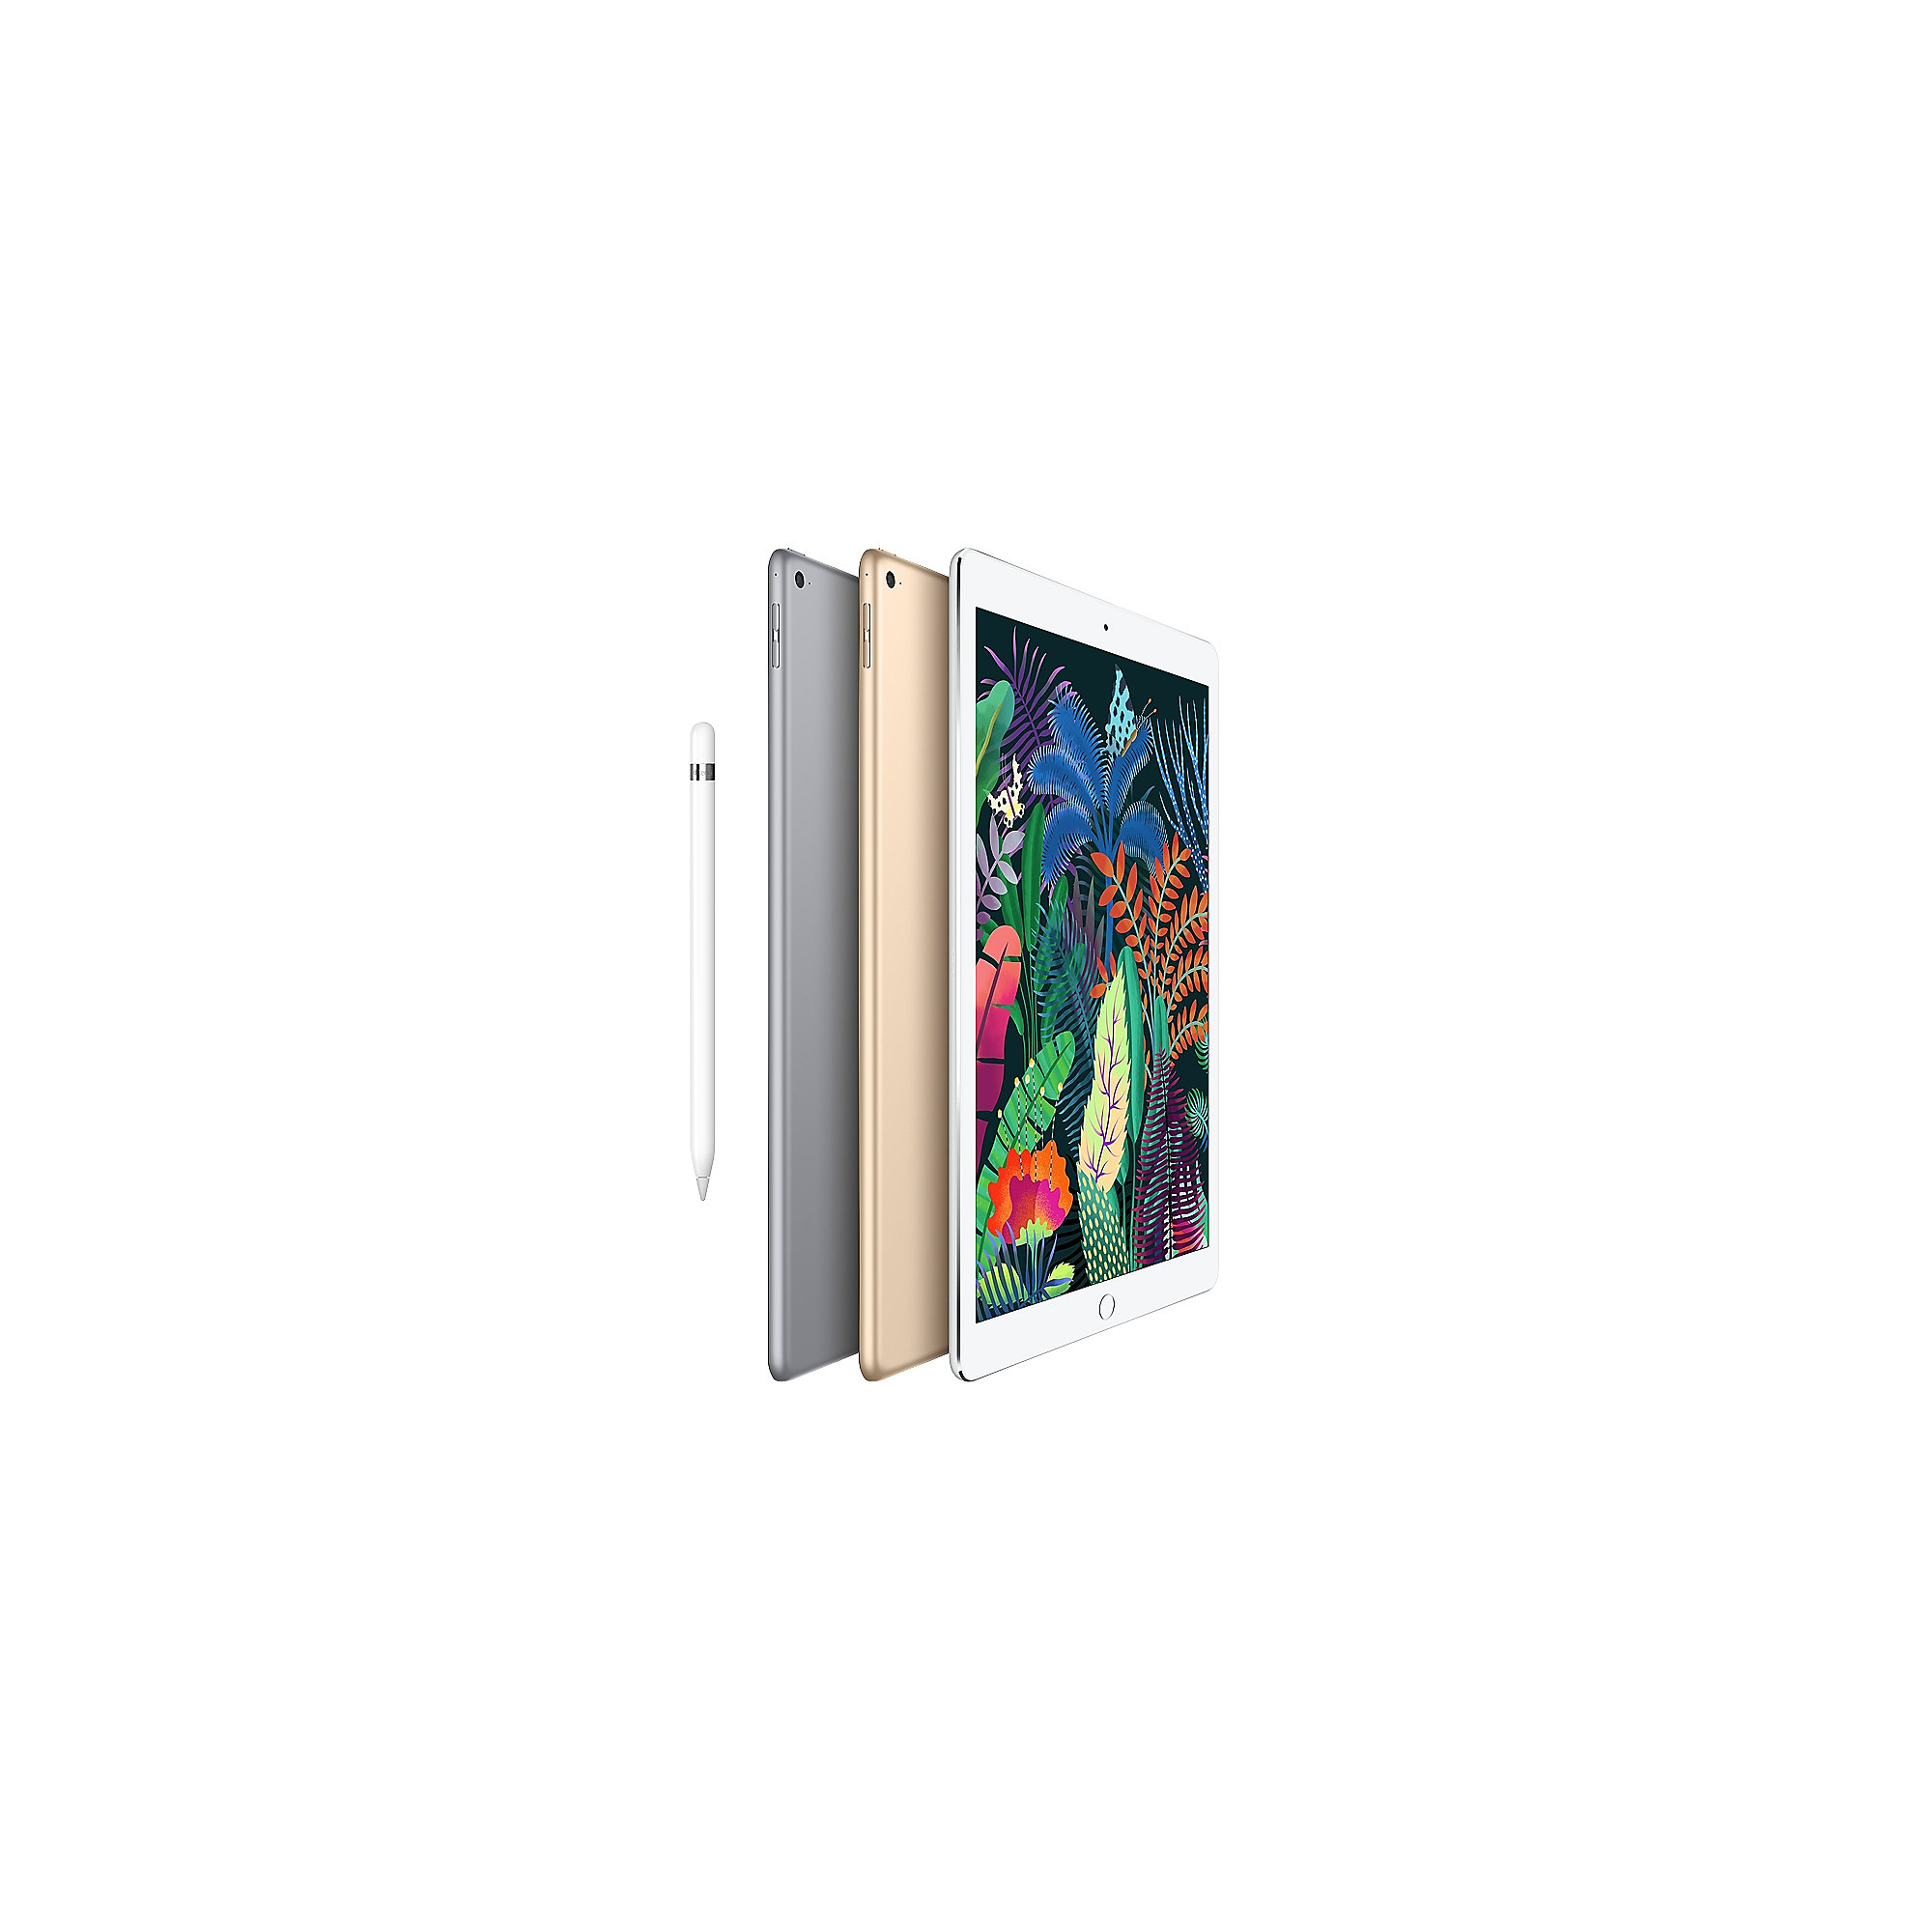 Apple iPad Pro Wi-Fi + Cellular 256 GB Spacegrau (ML3T2FD/A)